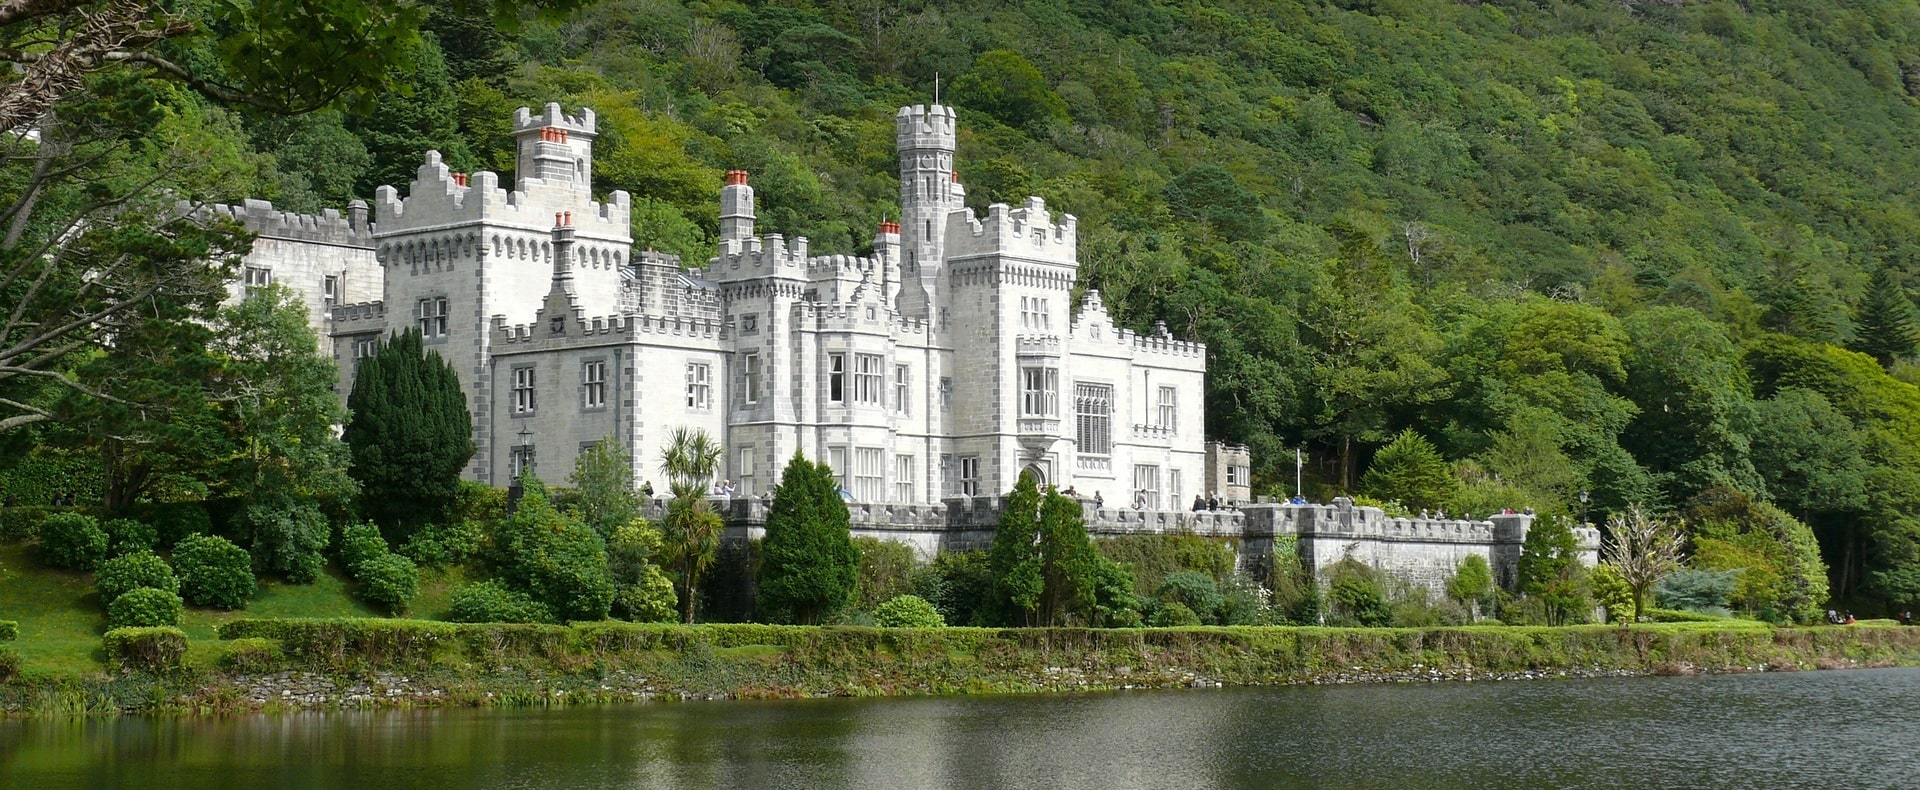 Connemara and Kylemore Abbey Day Trip Experience Gallery